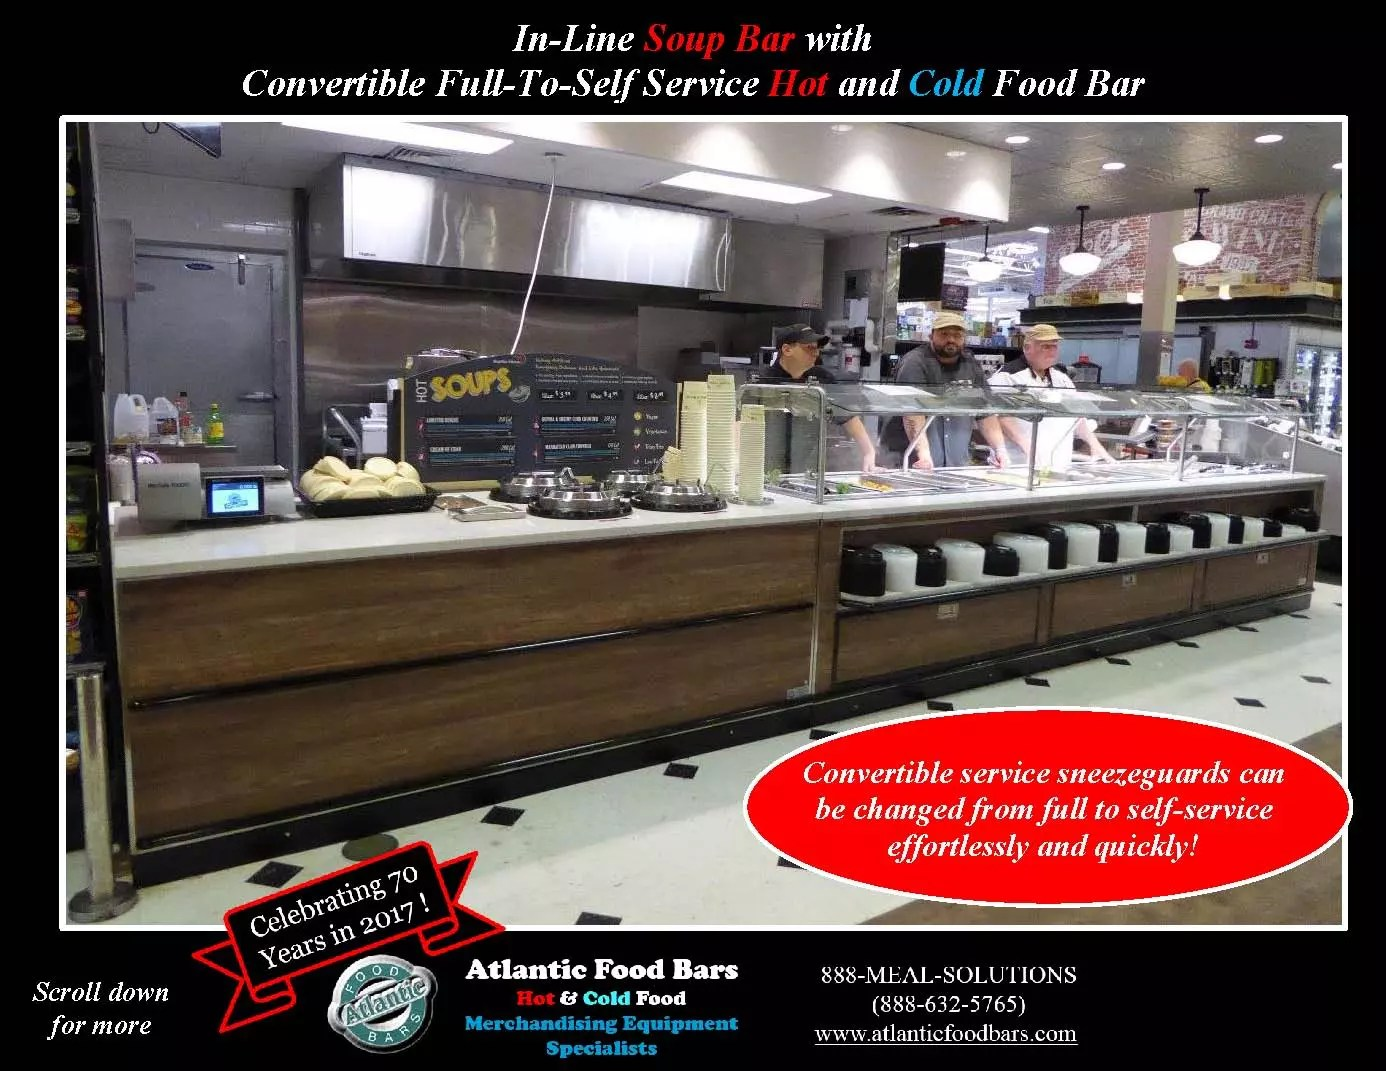 Atlantic Food Bars - Custom In-Line Soup Bar with Convertible Service Hot and Cold Food Bar_Page_1